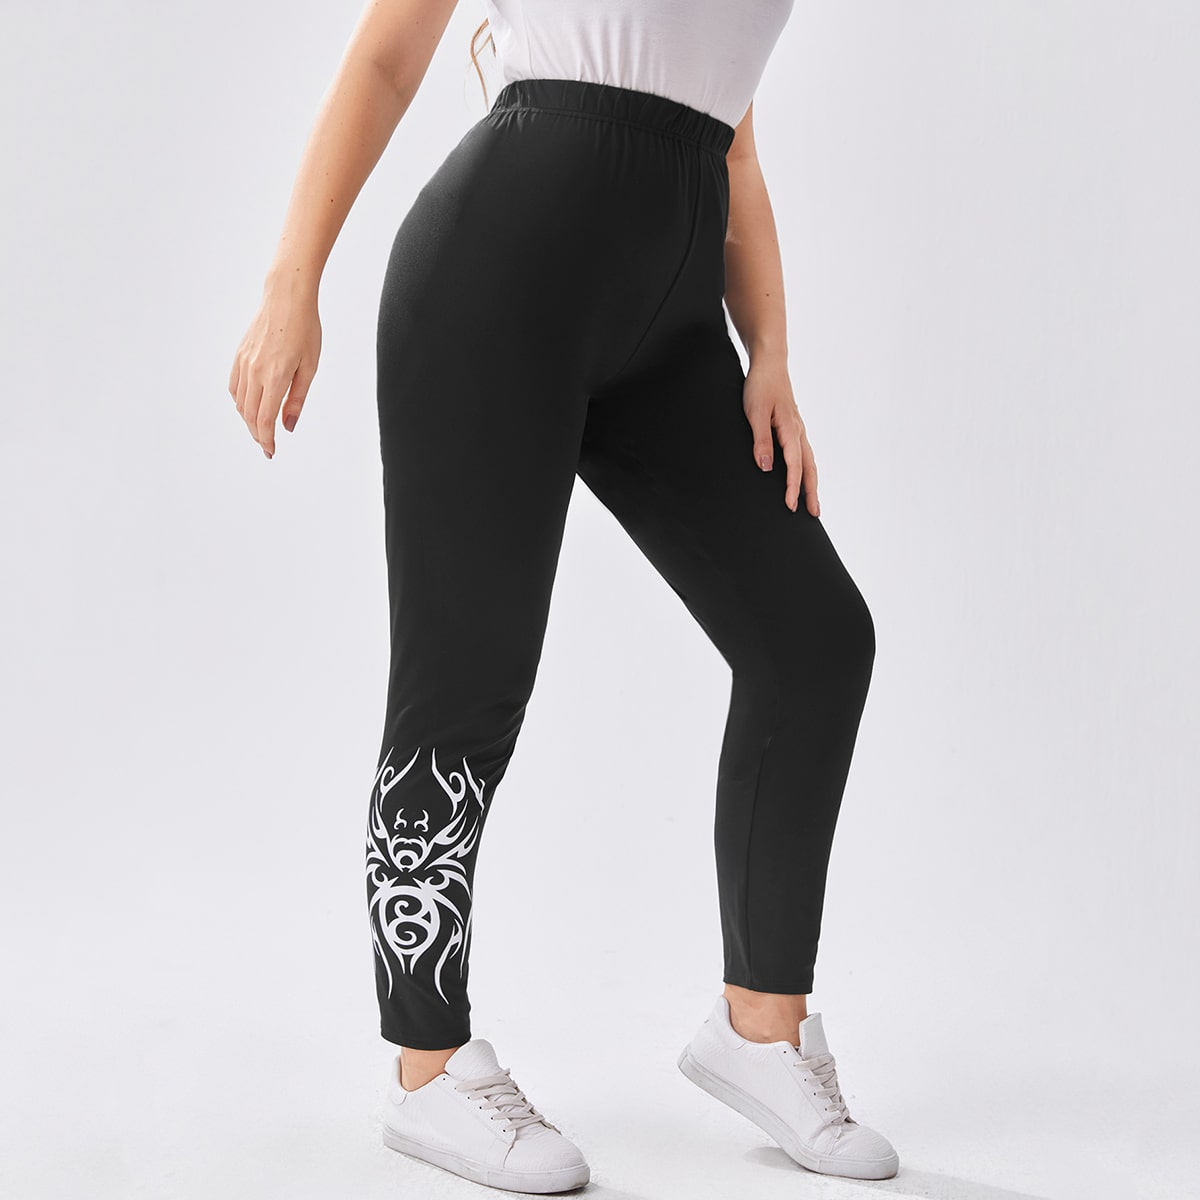 Plus Graphic Print High Waisted Skinny Pants, SHEIN  - buy with discount